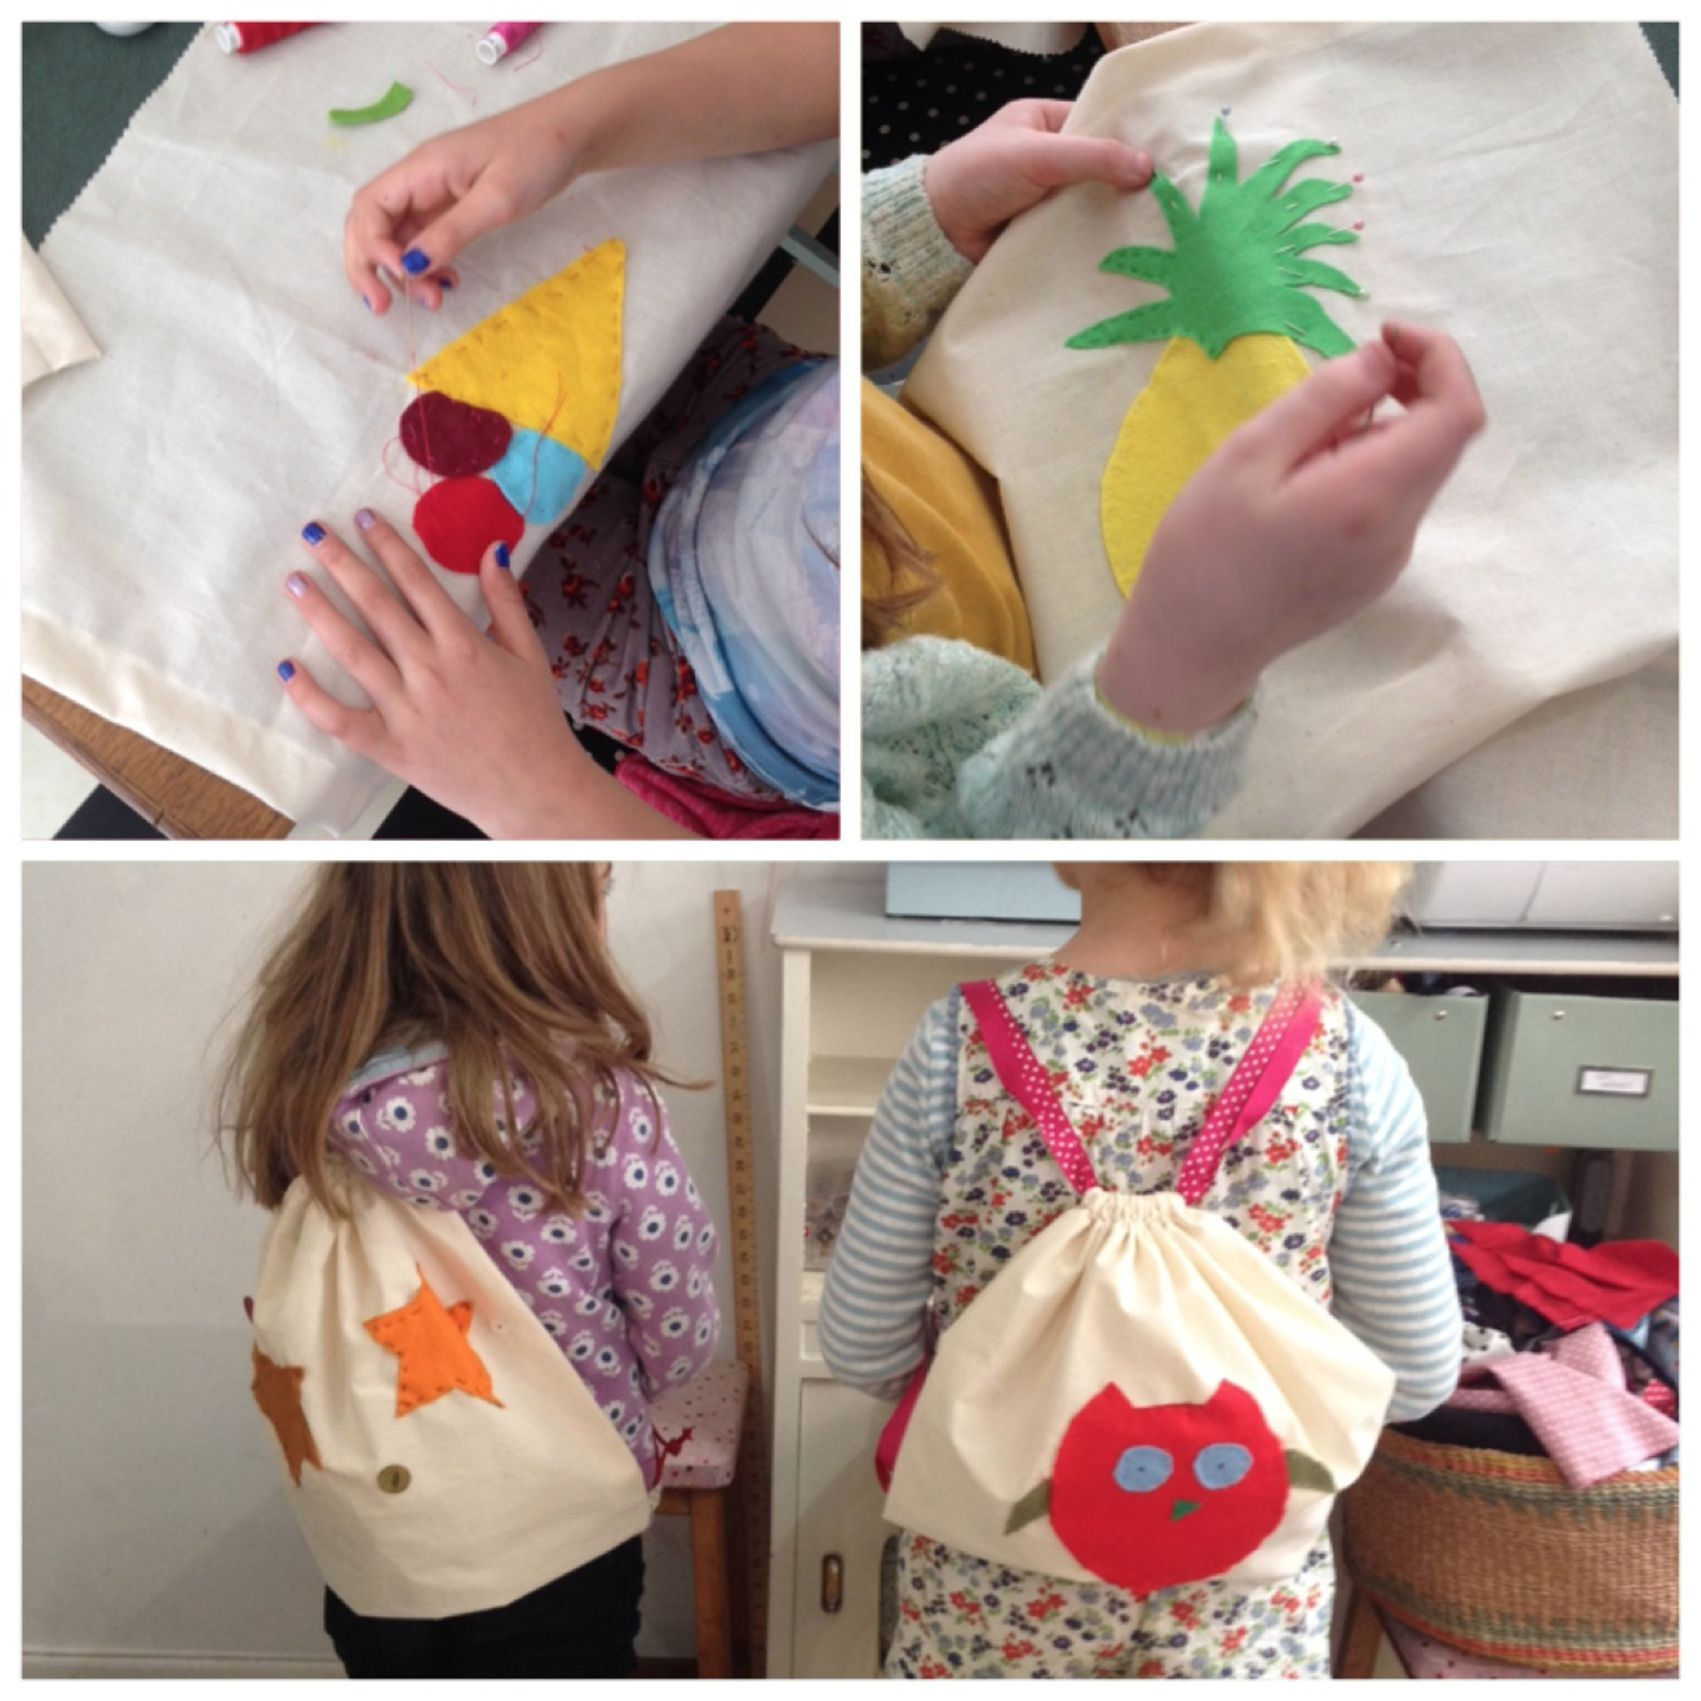 Children's sewing workshops and parties at Flo-Jo.